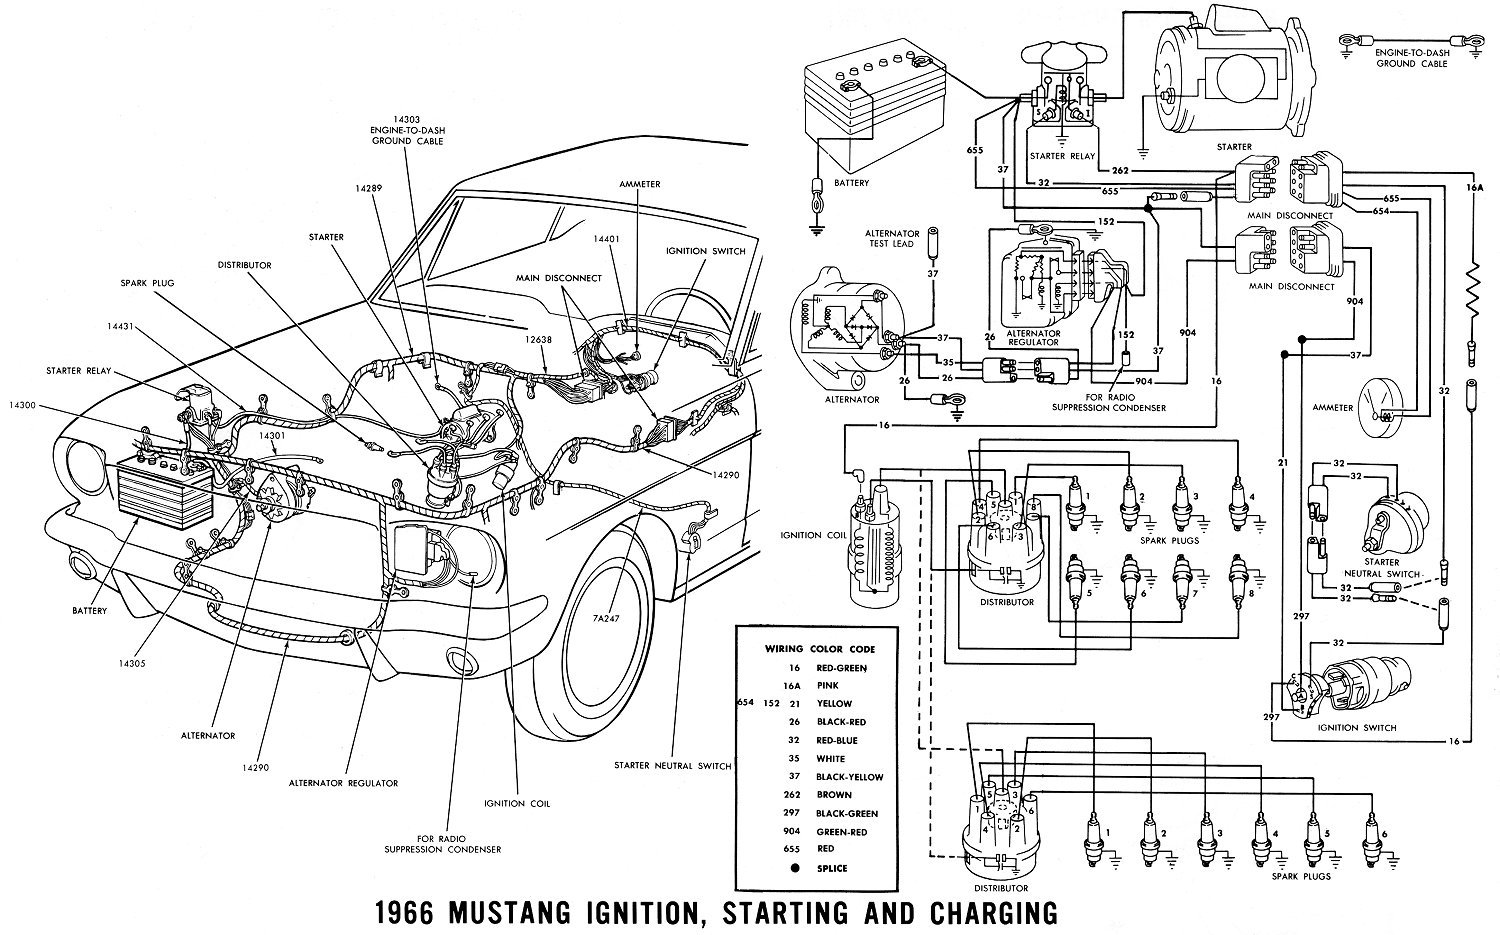 1966 Mustang Ignition Switch Diagram What Pins Are What Ford Mustang Forum